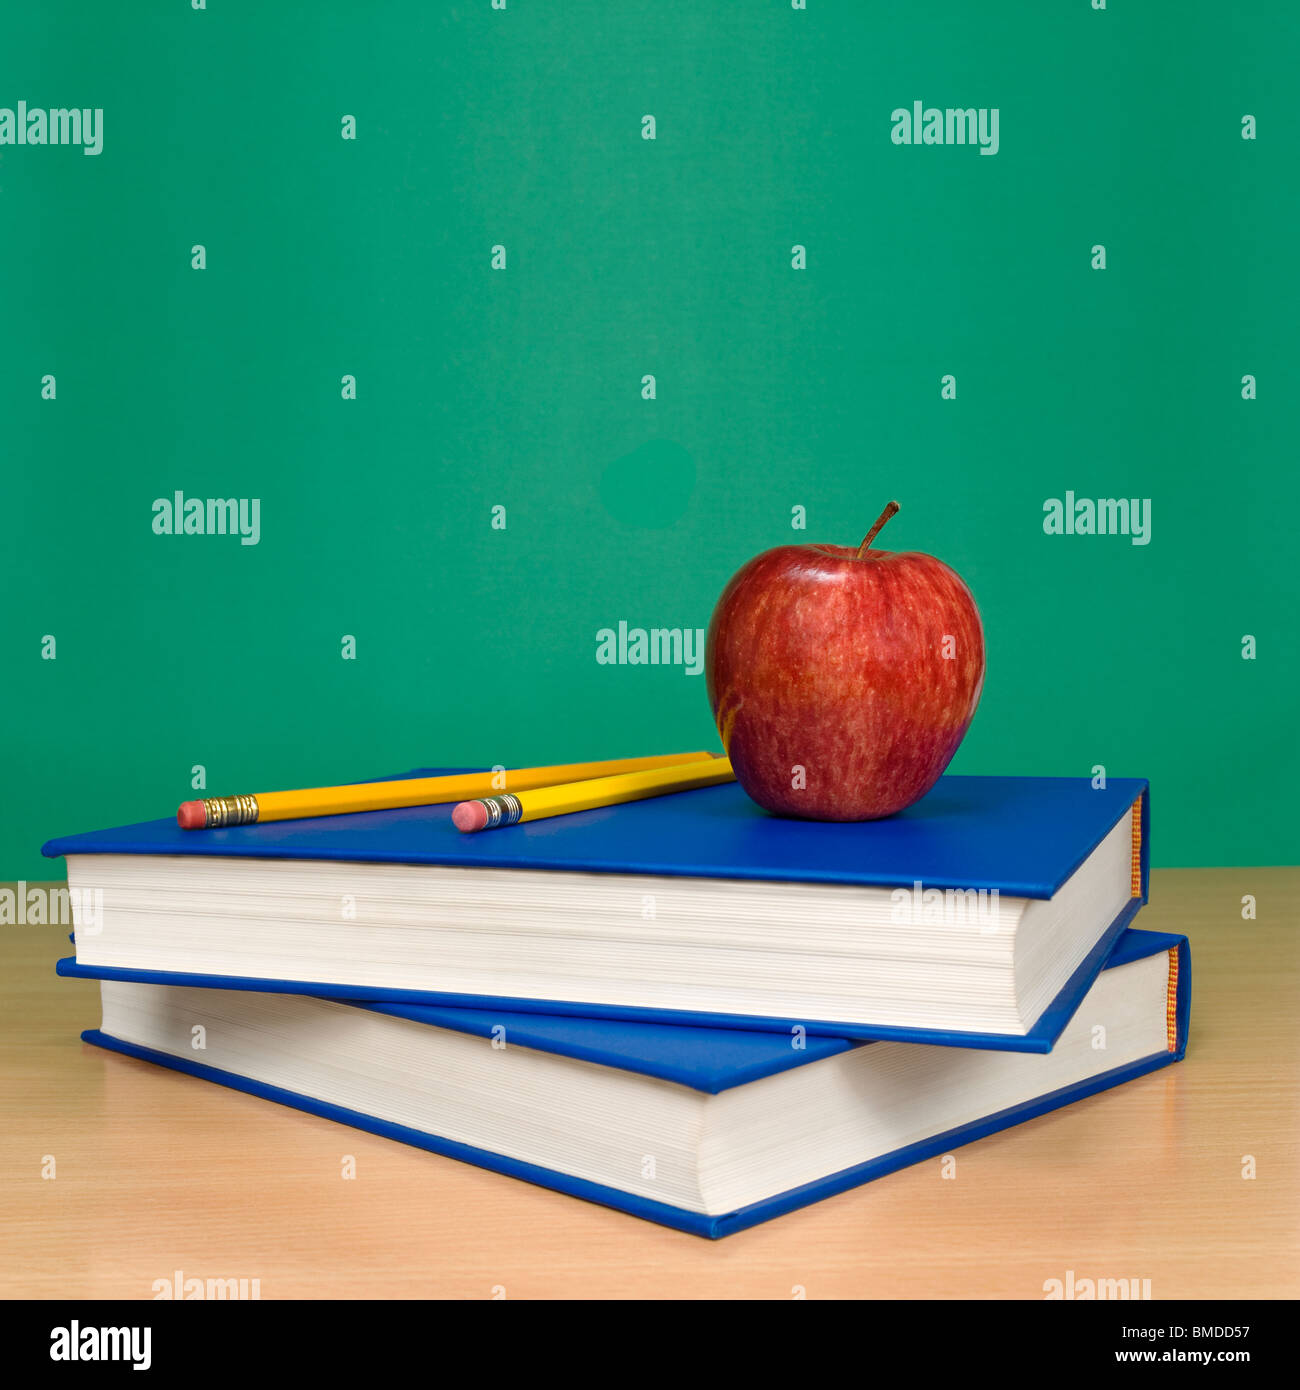 Blank chalkboard. Books, pencils and an apple on foreground. - Stock Image